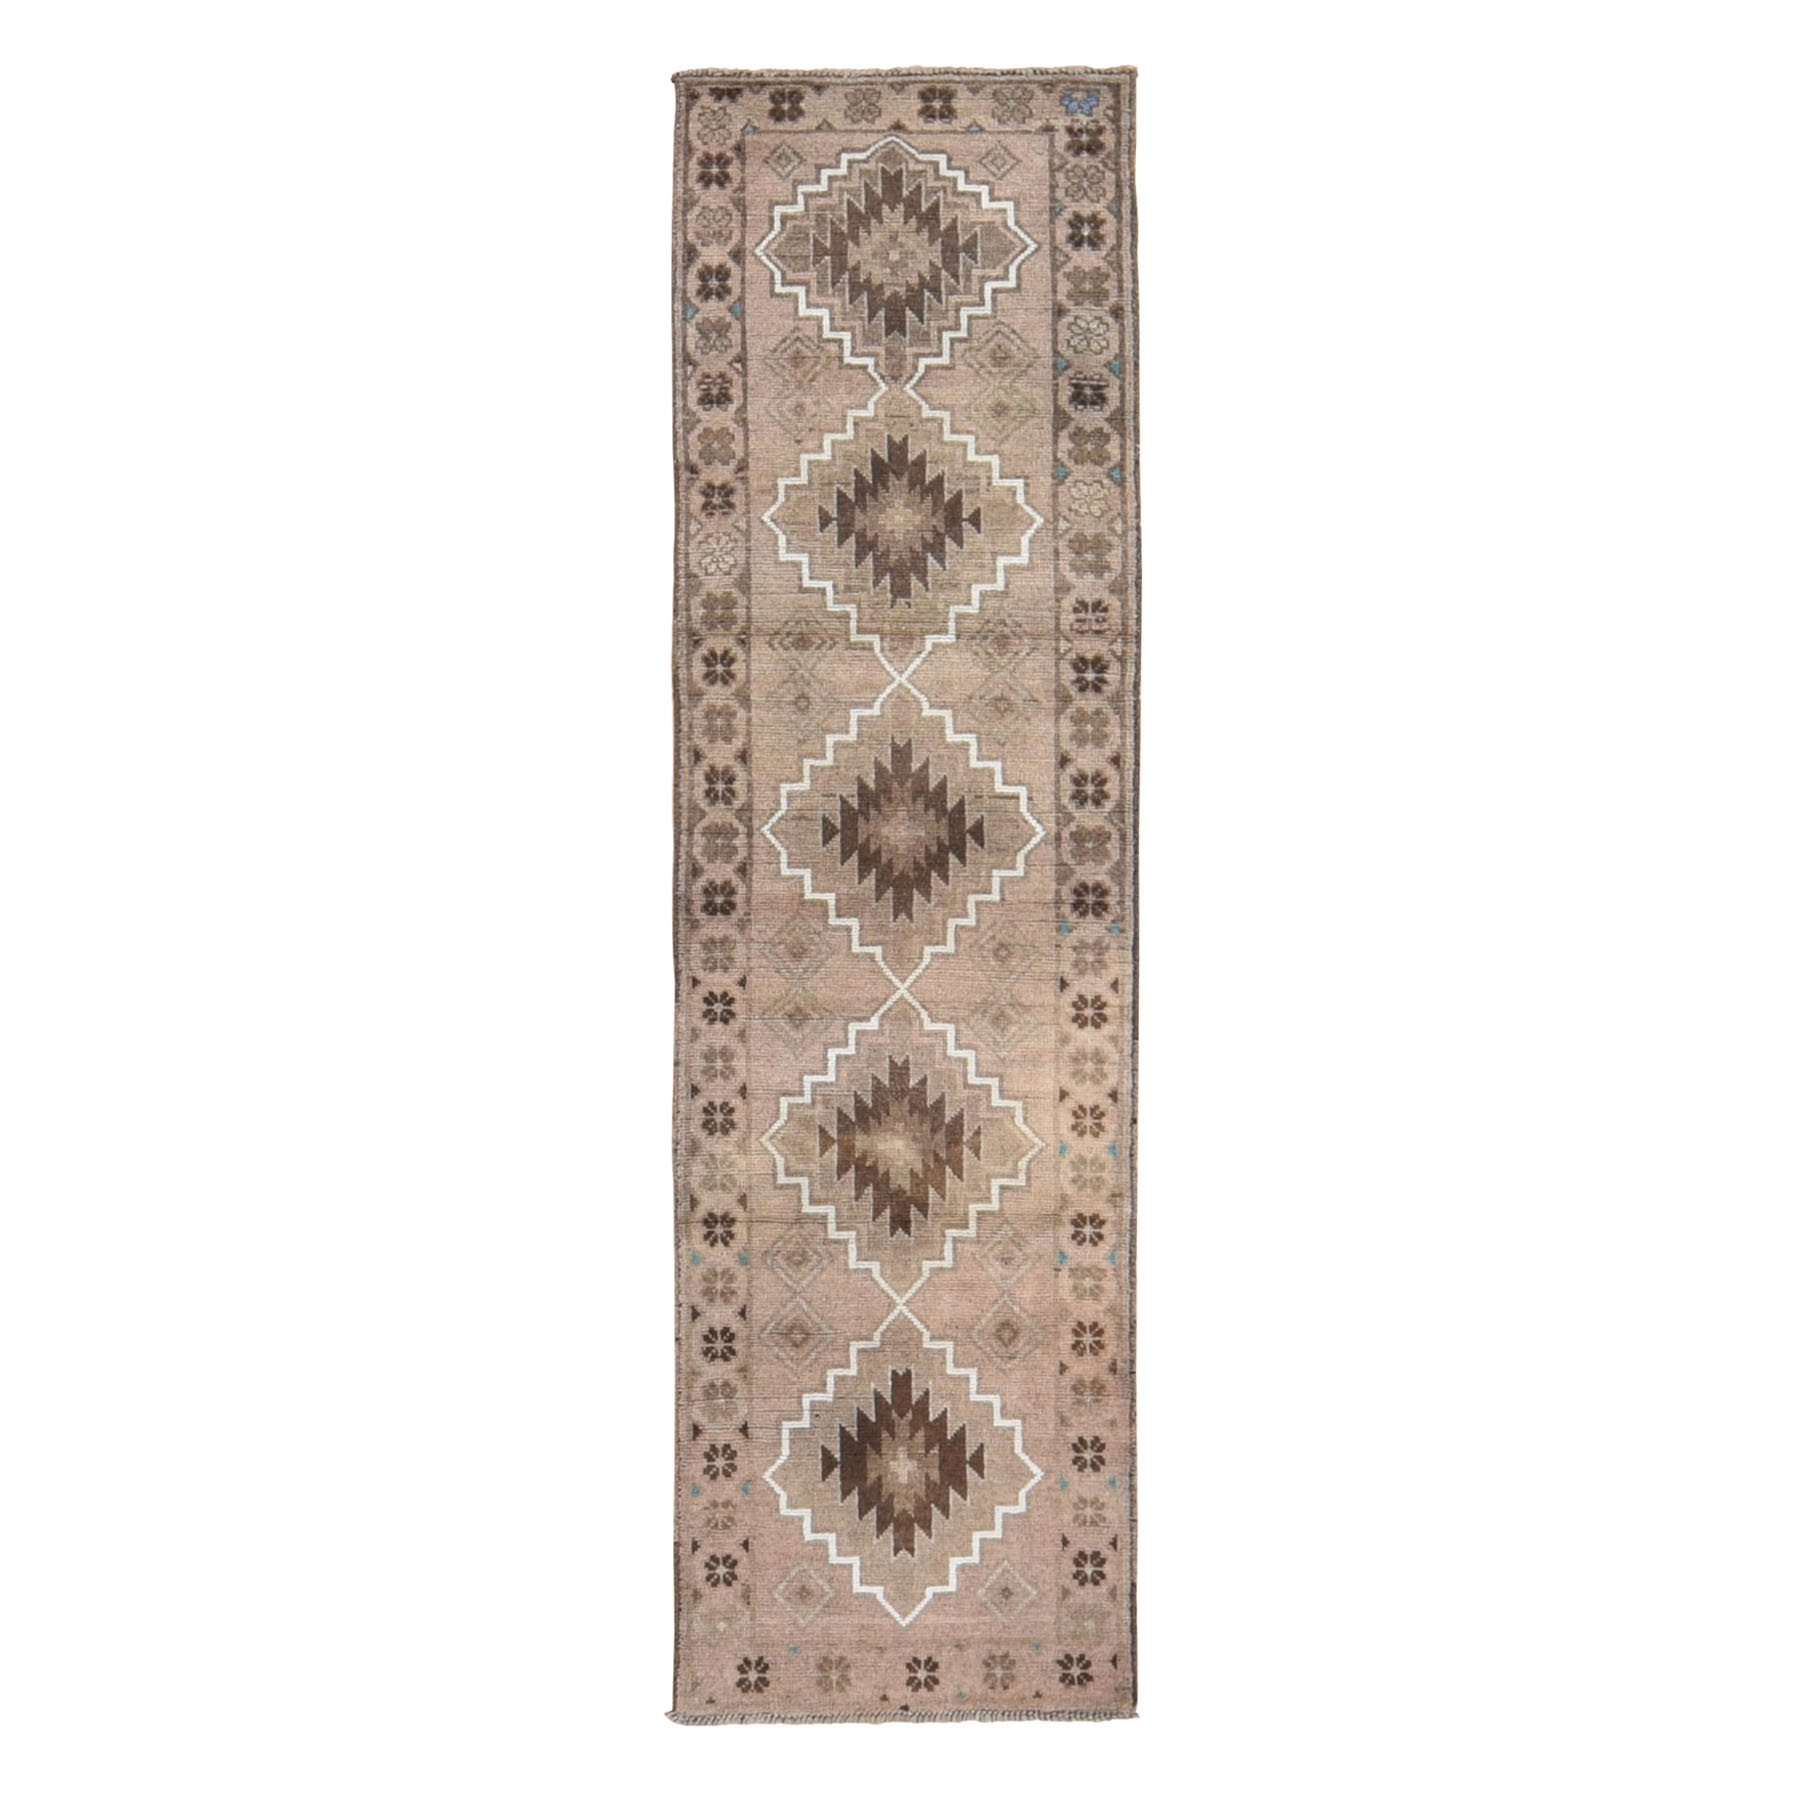 Nomadic And Village Collection Hand Knotted Brown Rug No: 0198522